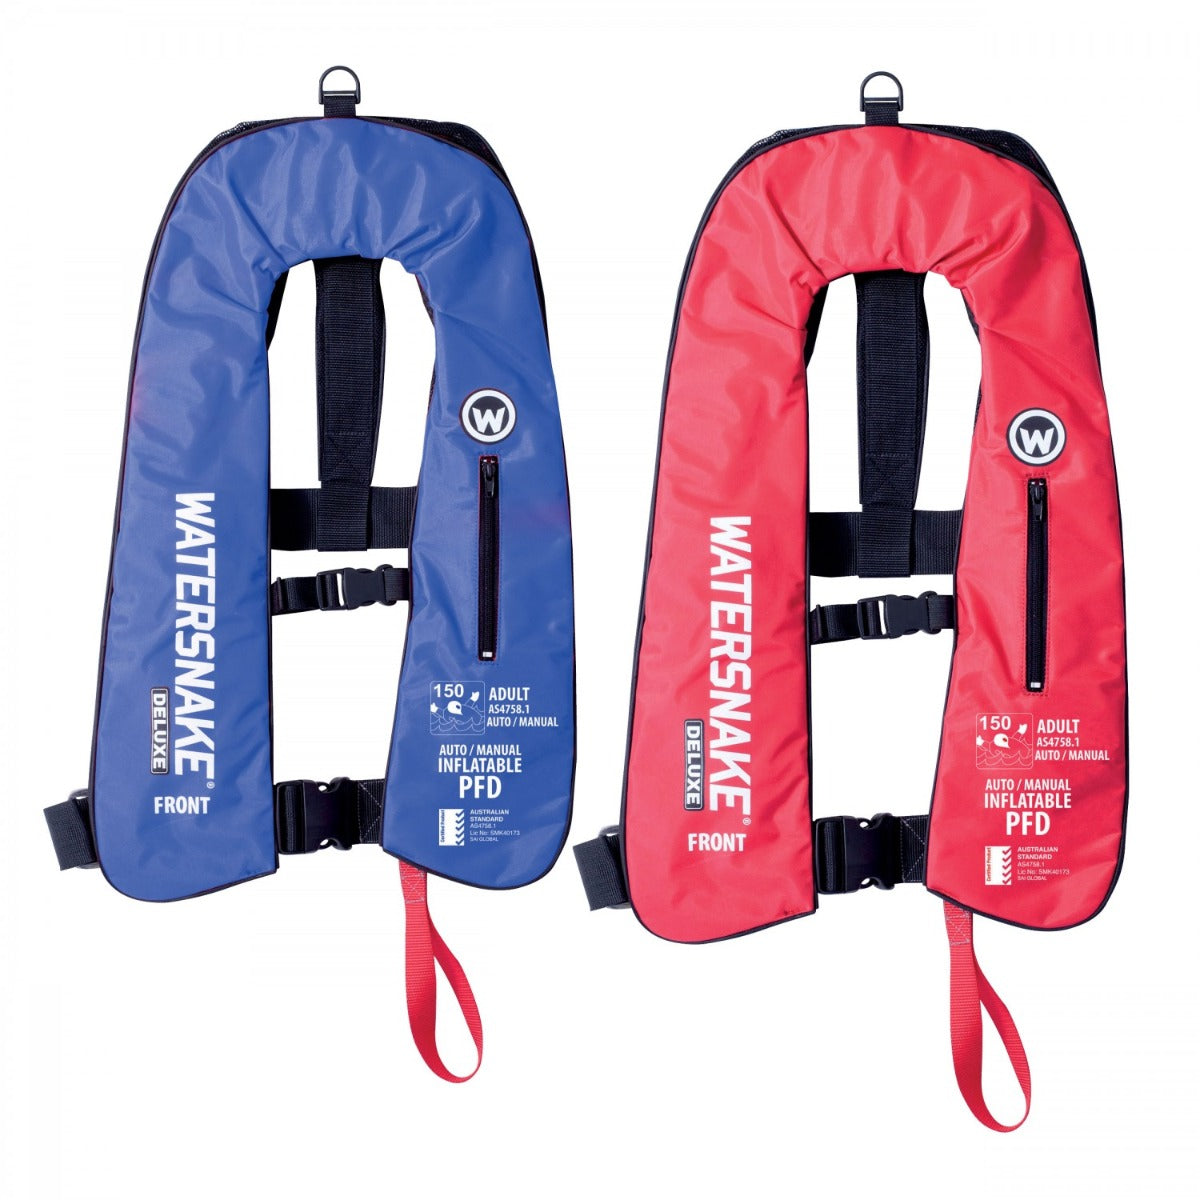 Watersnake Auto/Manual Inflatable PFD Level 150 Adult